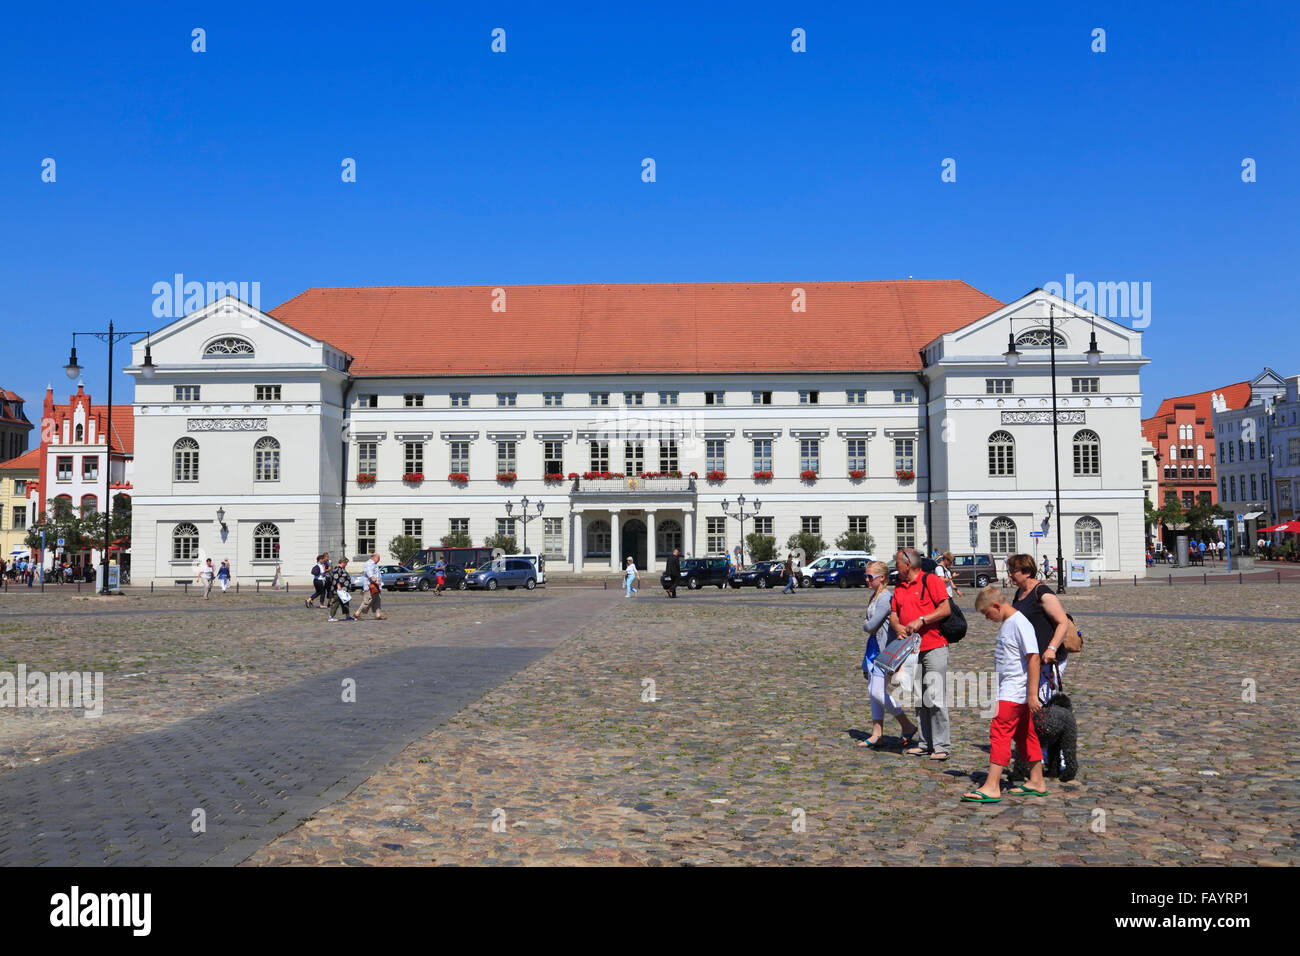 Town hall at market square, Wismar, Baltic Sea, Mecklenburg Western Pomerania, Germany, Europe - Stock Image